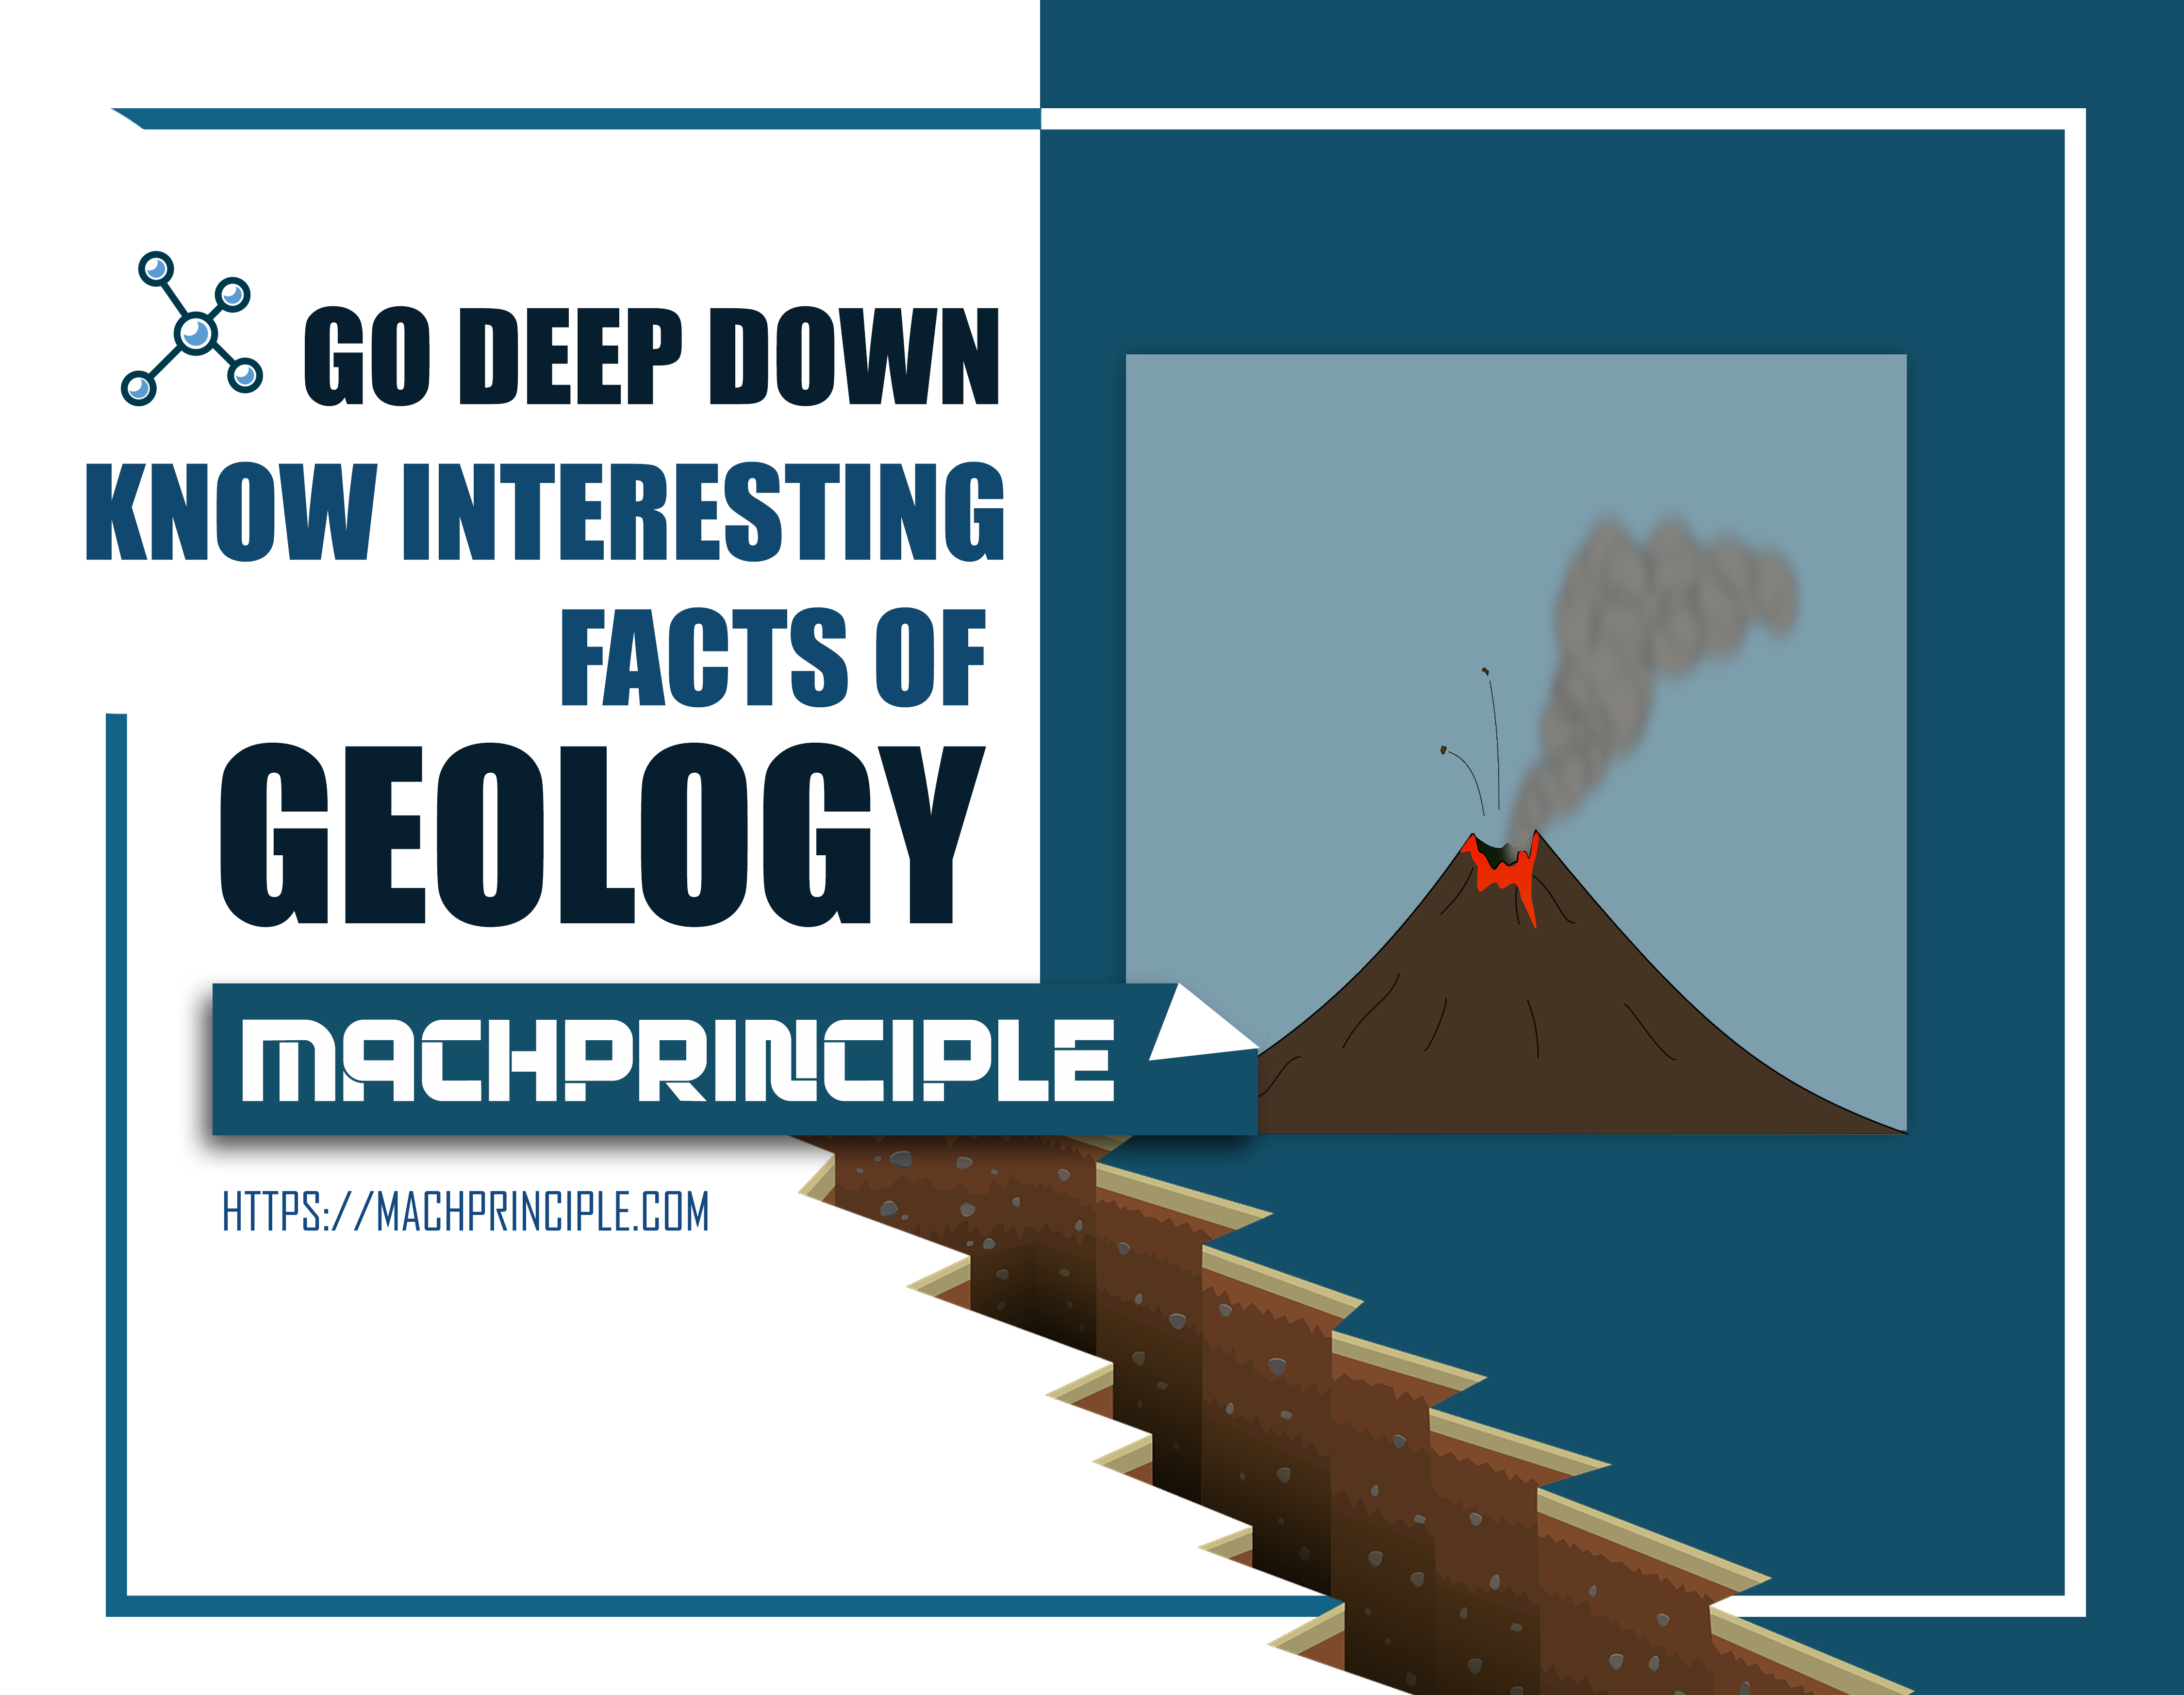 Know interesting facts about geology